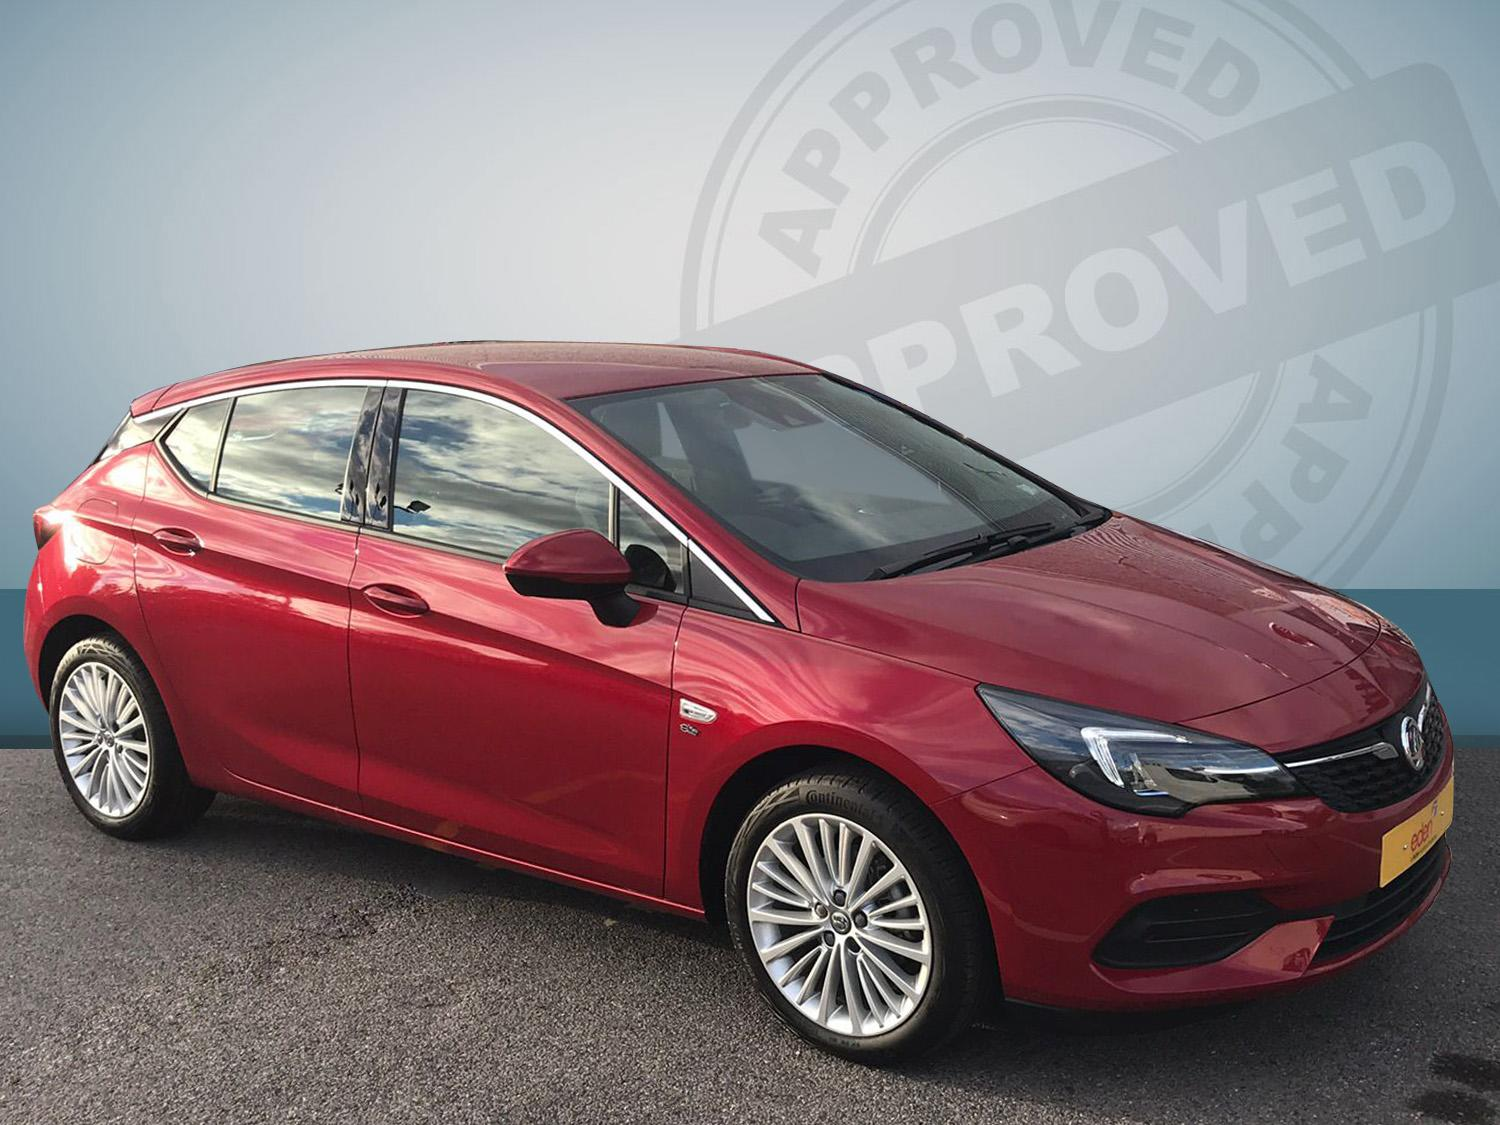 Vauxhall Astra 1.2t 145ps Elite Nav 5dr 499/279 Petrol Peperoncion Red